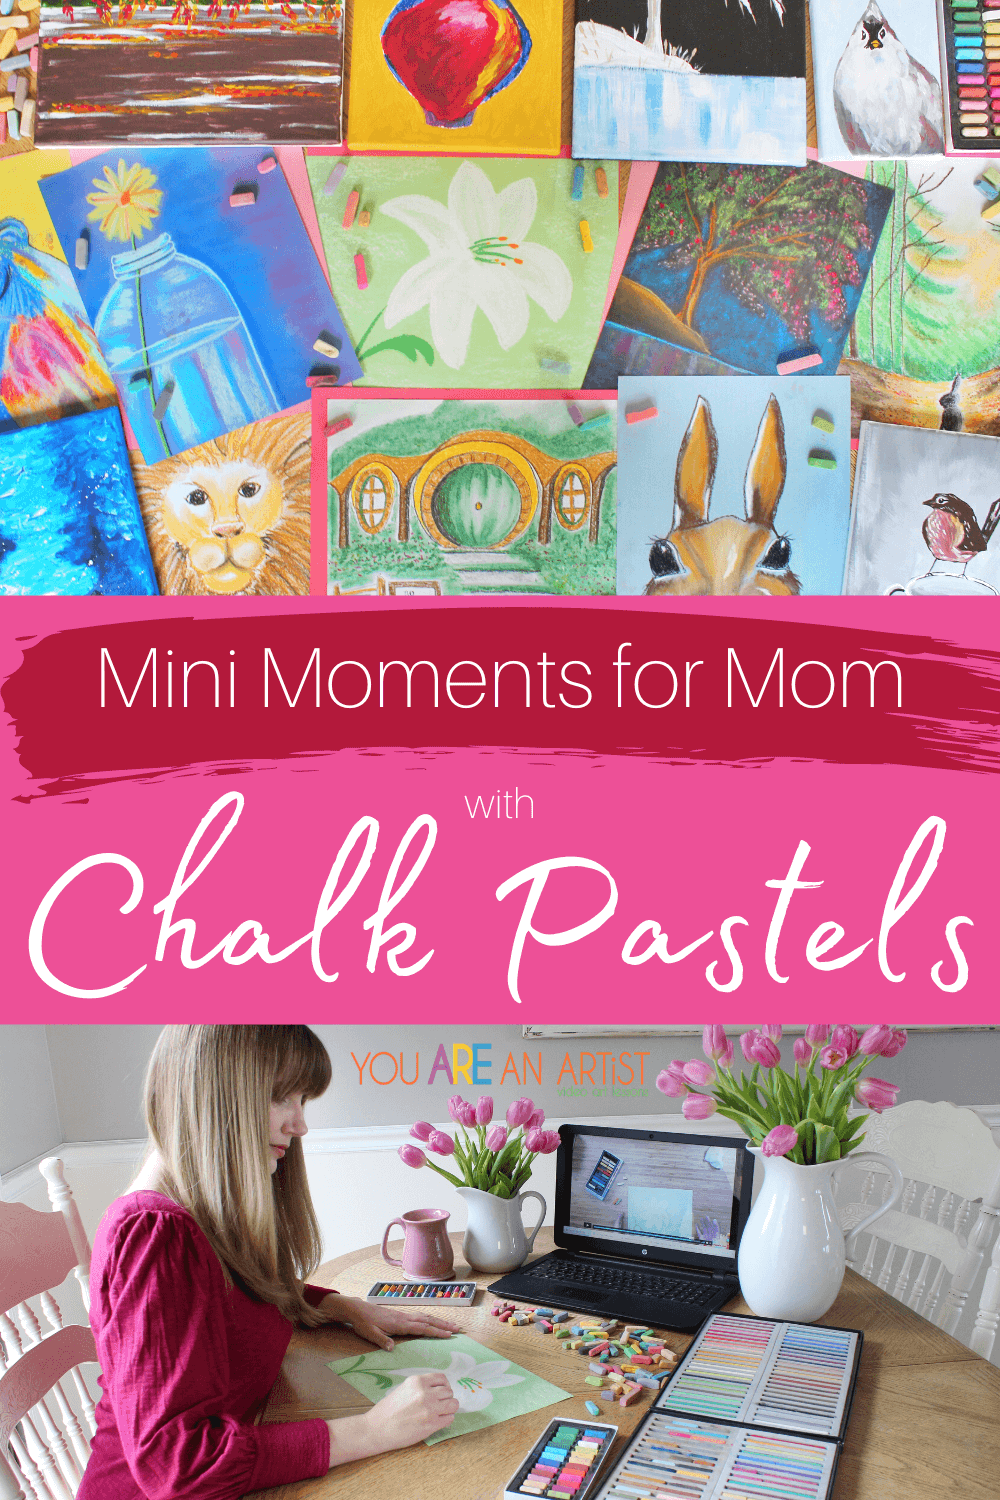 Mini Moments for Mom with Chalk Pastels: Whether you 5 minutes, 10 minutes, 20 minutes, or more, take the time to recharge your spirit with these mini moments for moms. Even busy moms can appreciate the simplicity and ease of chalk pastels. No super long supply list is needed! Just a starter set of chalk pastels, a pack of construction paper, and a few moments is all that required for a mom to reconnect with herself and a love of art. #momlife #momtime #motherhood #mom #relaxation #selfcare #minimomentsformoms #momselfcare #momart